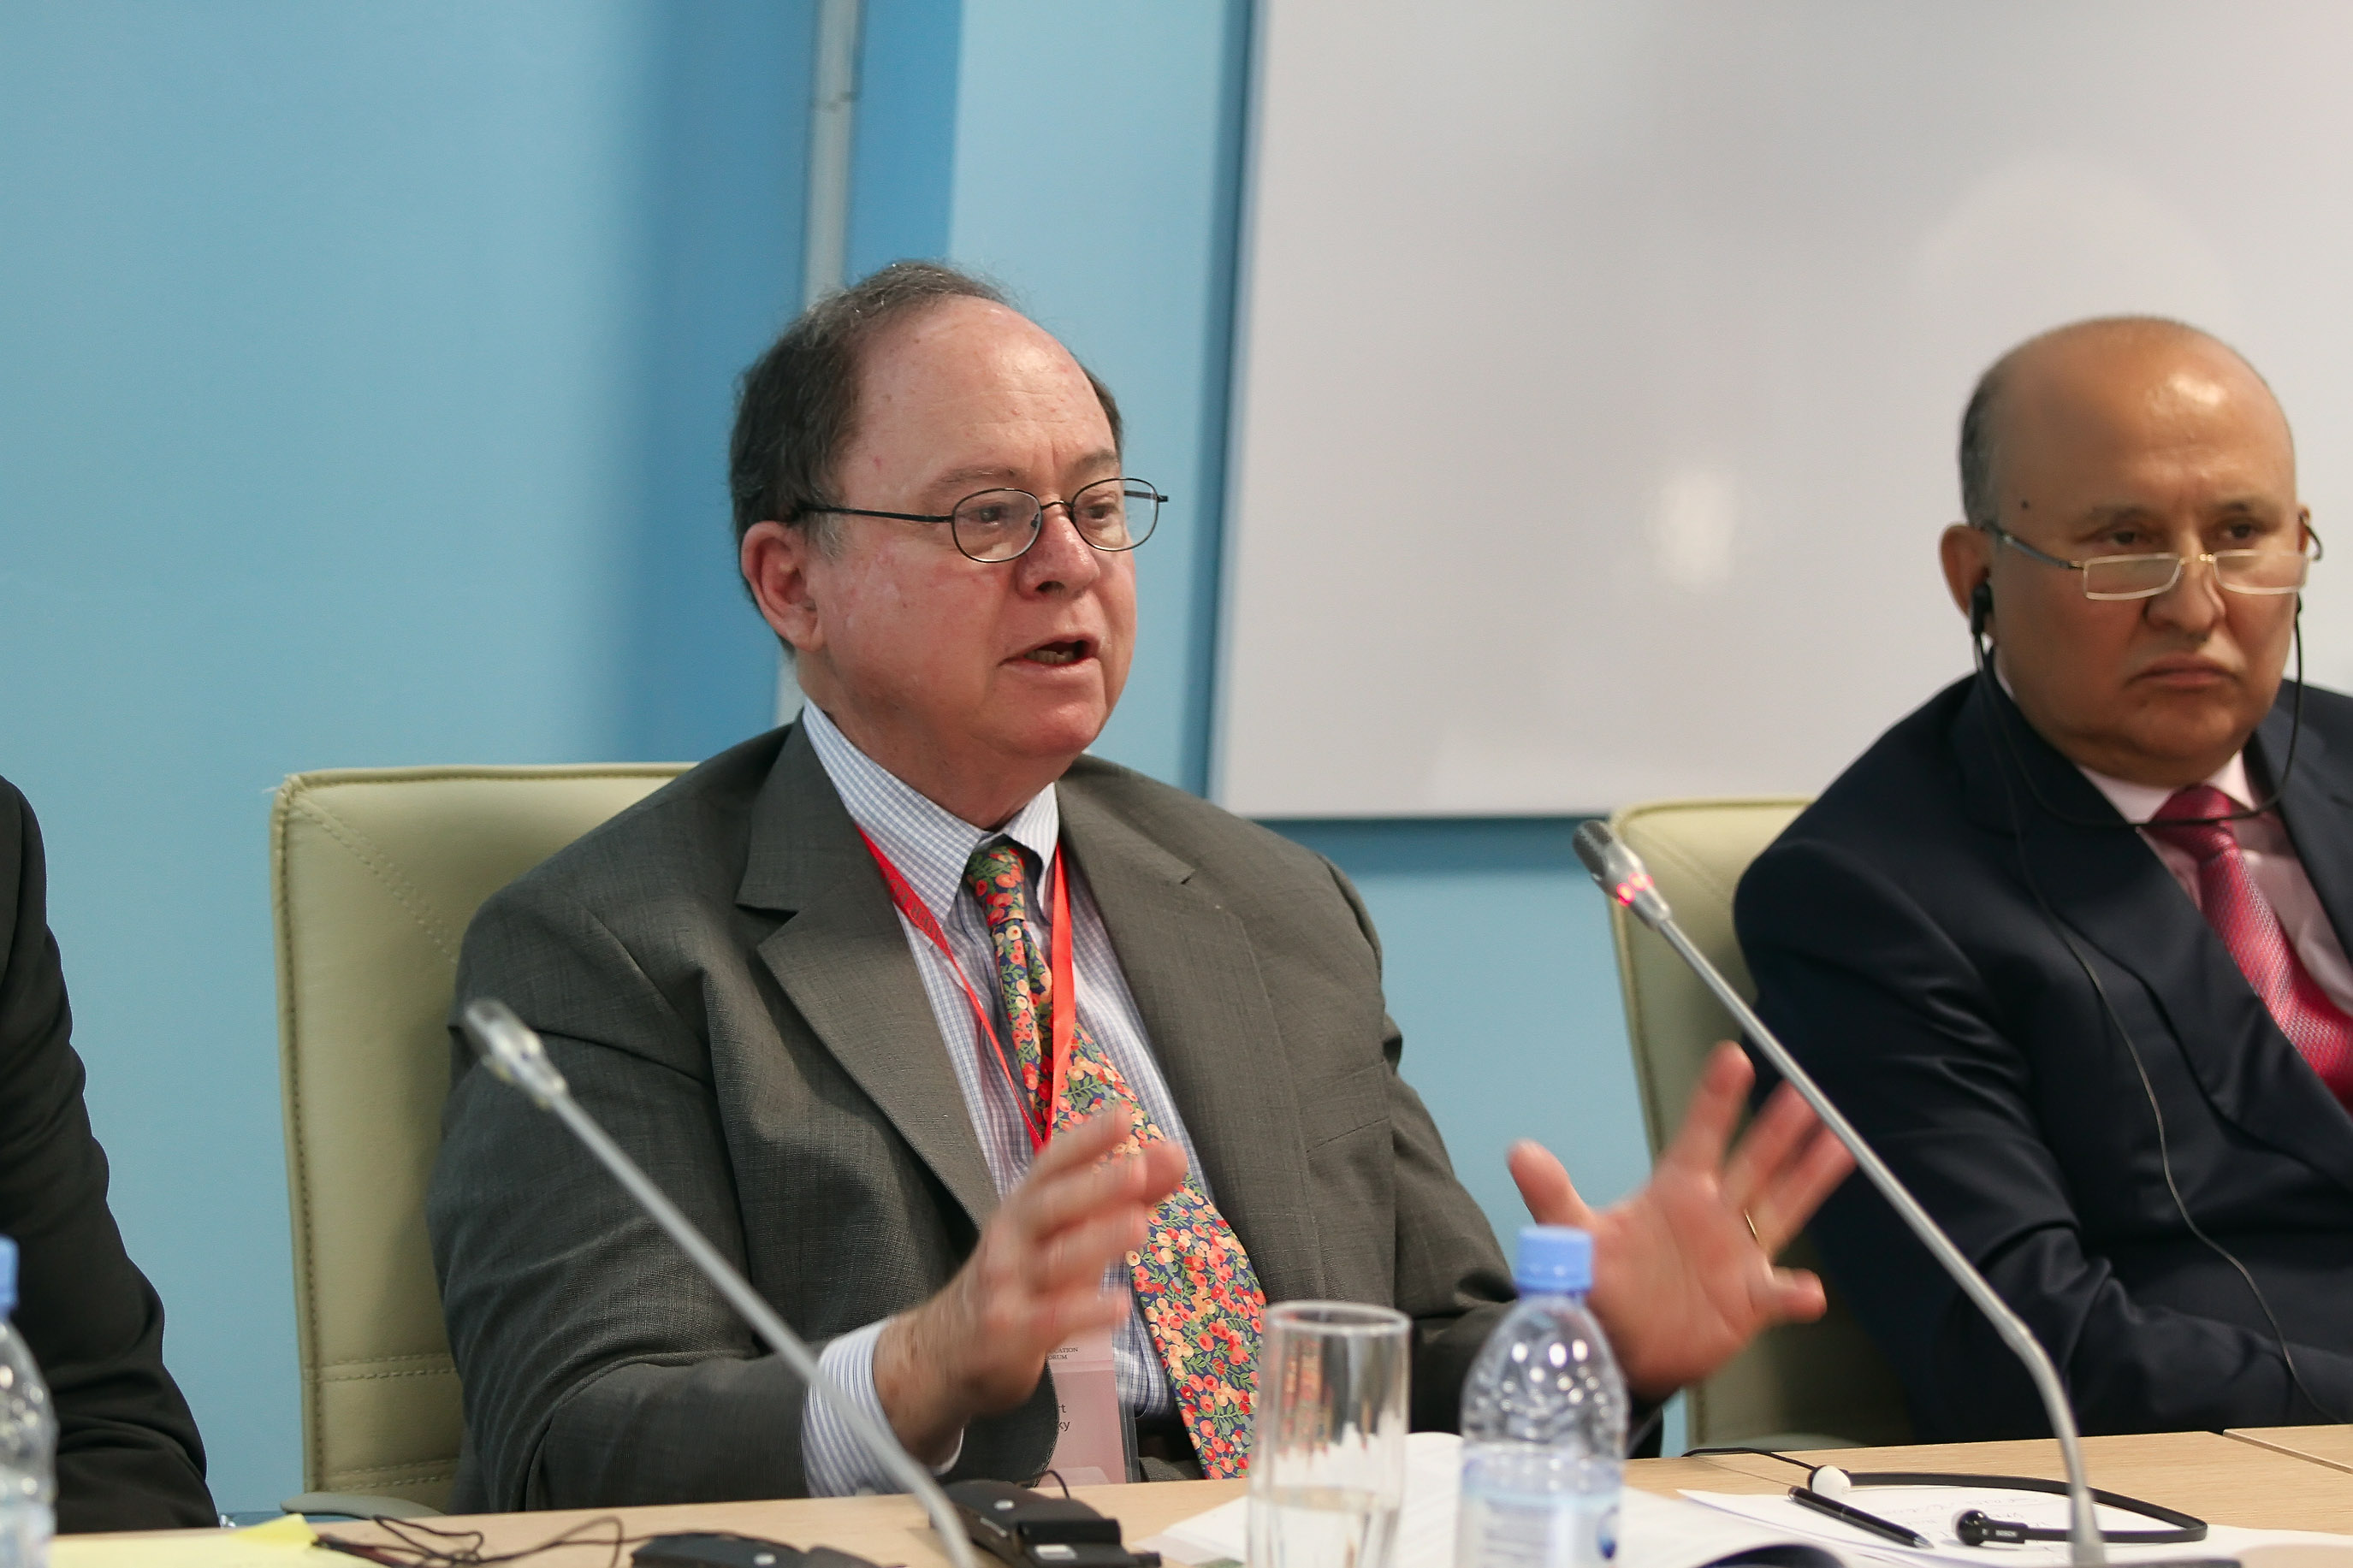 Professor Robert Zemsky of the University of Pennsylvania's Graduate School of Education moderates a conference panel on universities' public responsibility. Photo courtesy of Nazarbayev University.